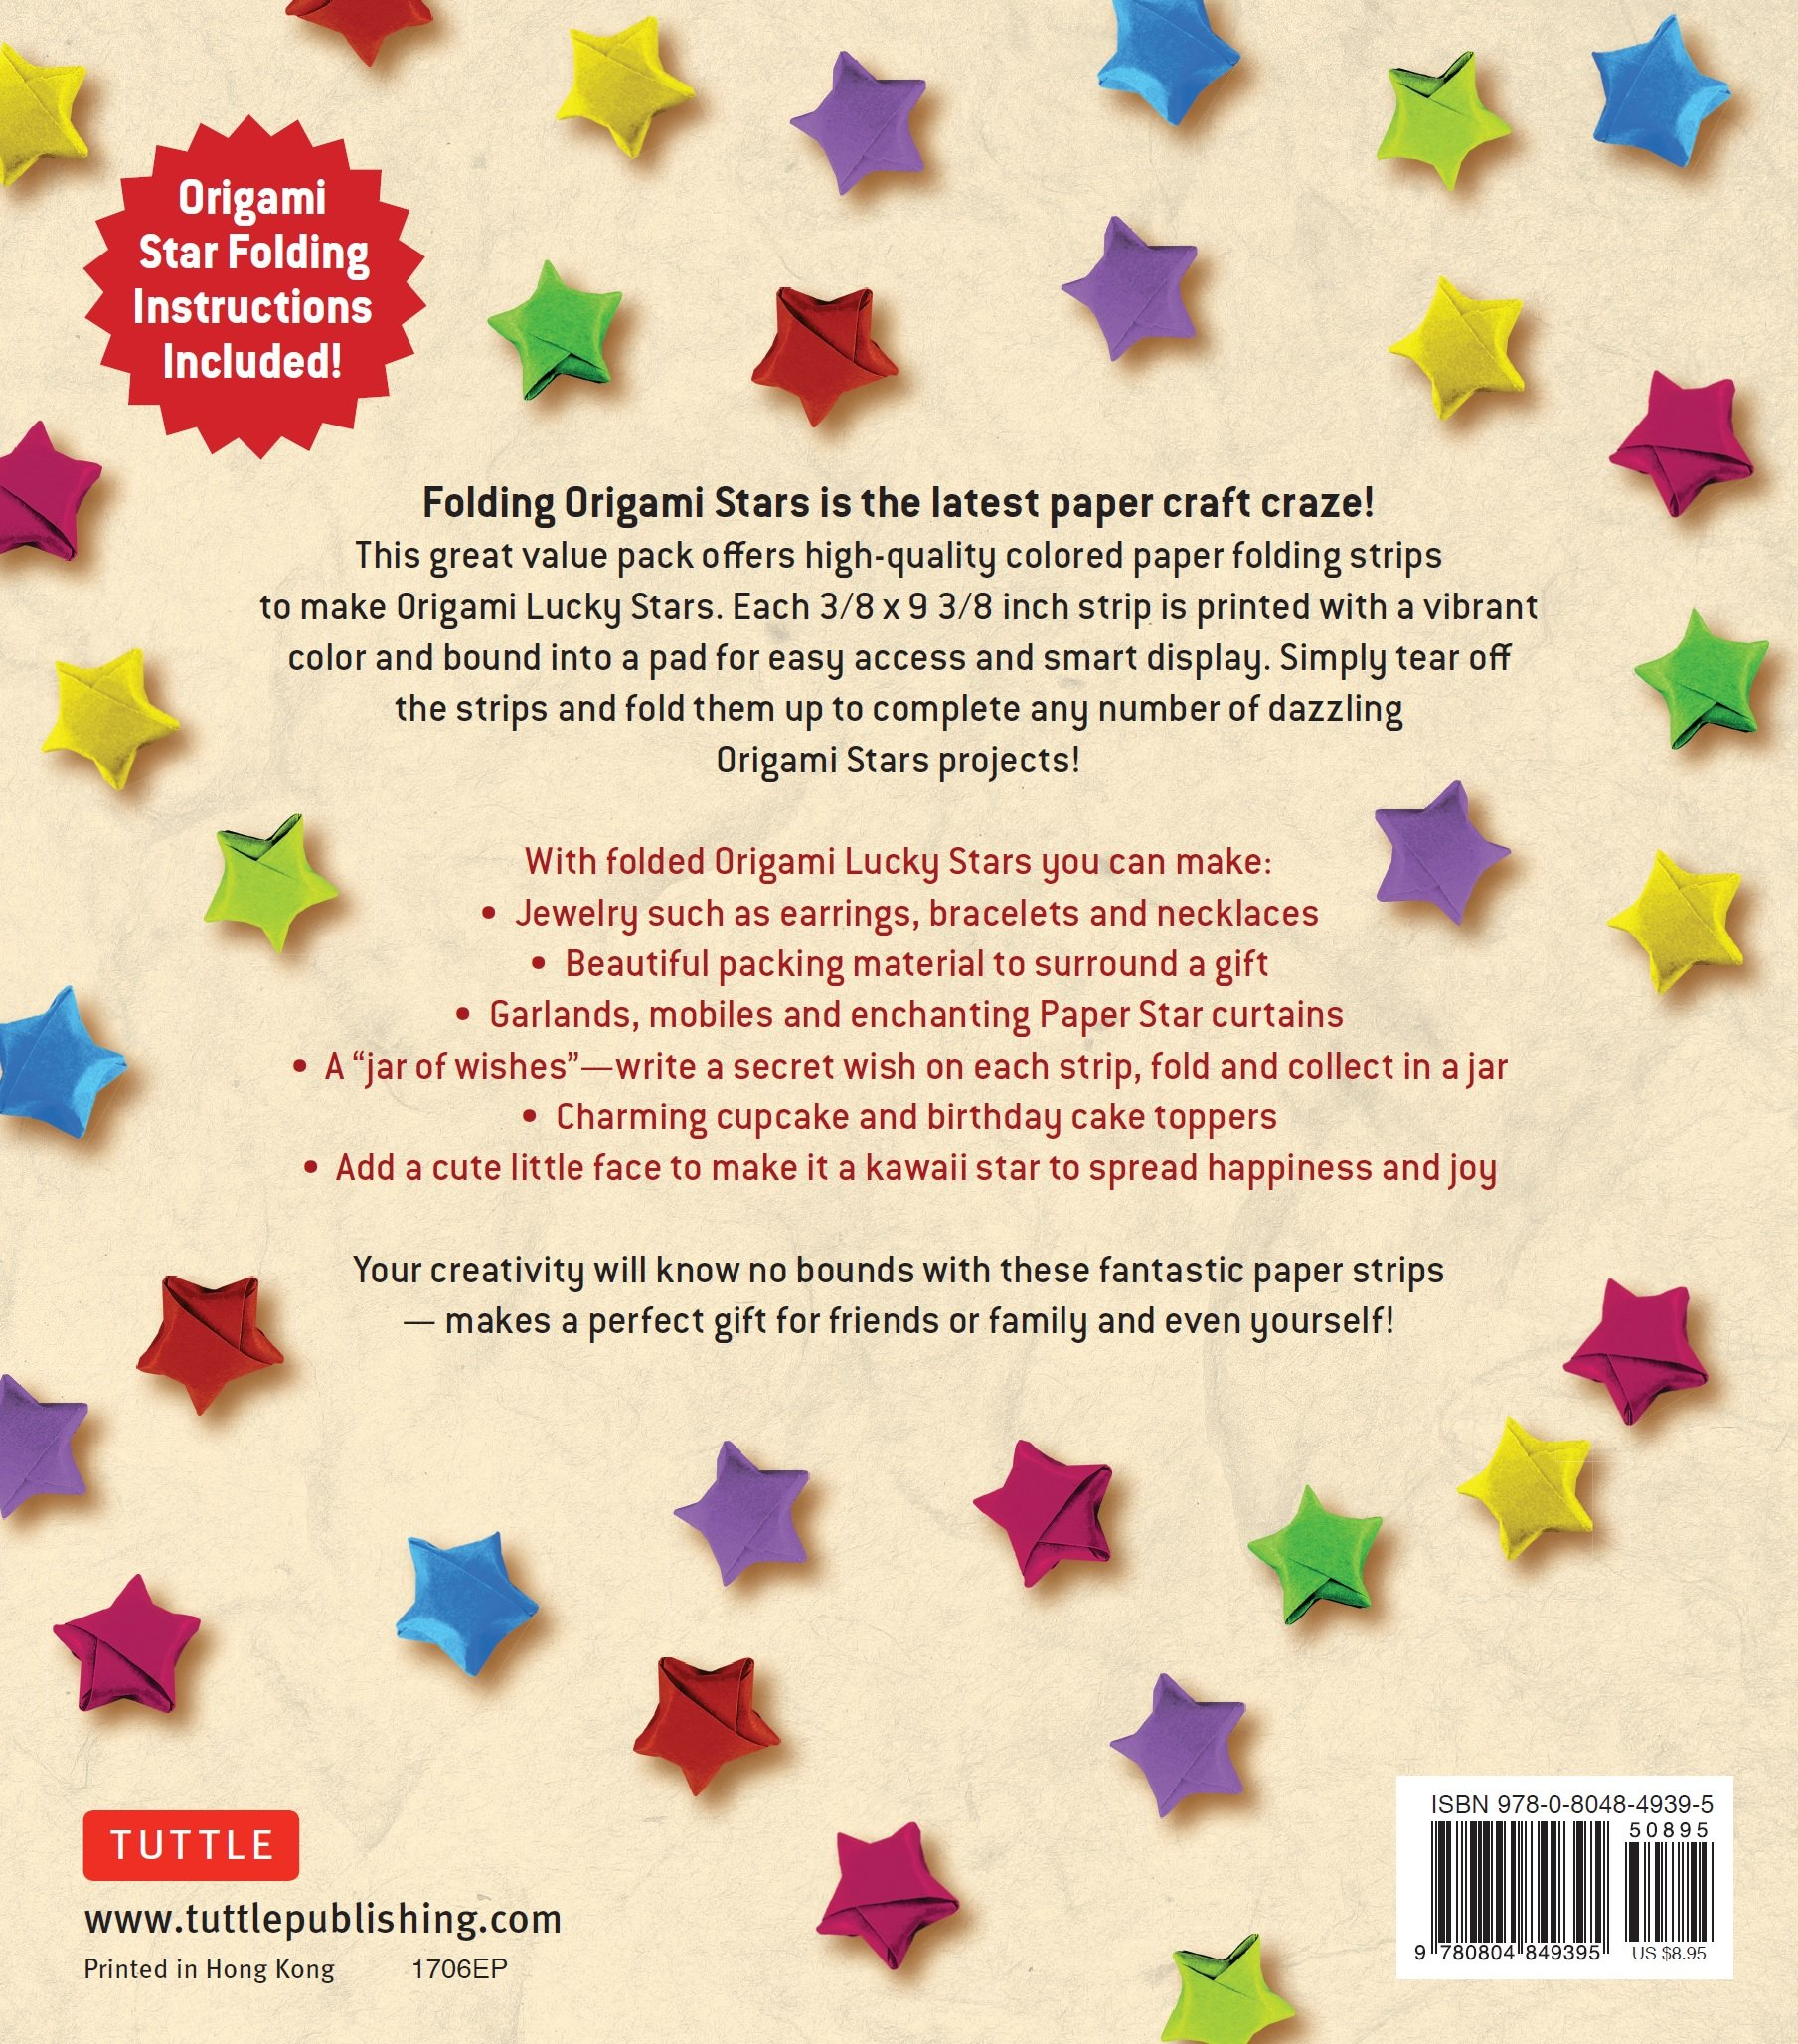 Amazon origami stars papers 1000 paper strips in assorted amazon origami stars papers 1000 paper strips in assorted colors 10 colors 1000 sheets easy instructions for origami lucky stars 9780804849395 jeuxipadfo Choice Image